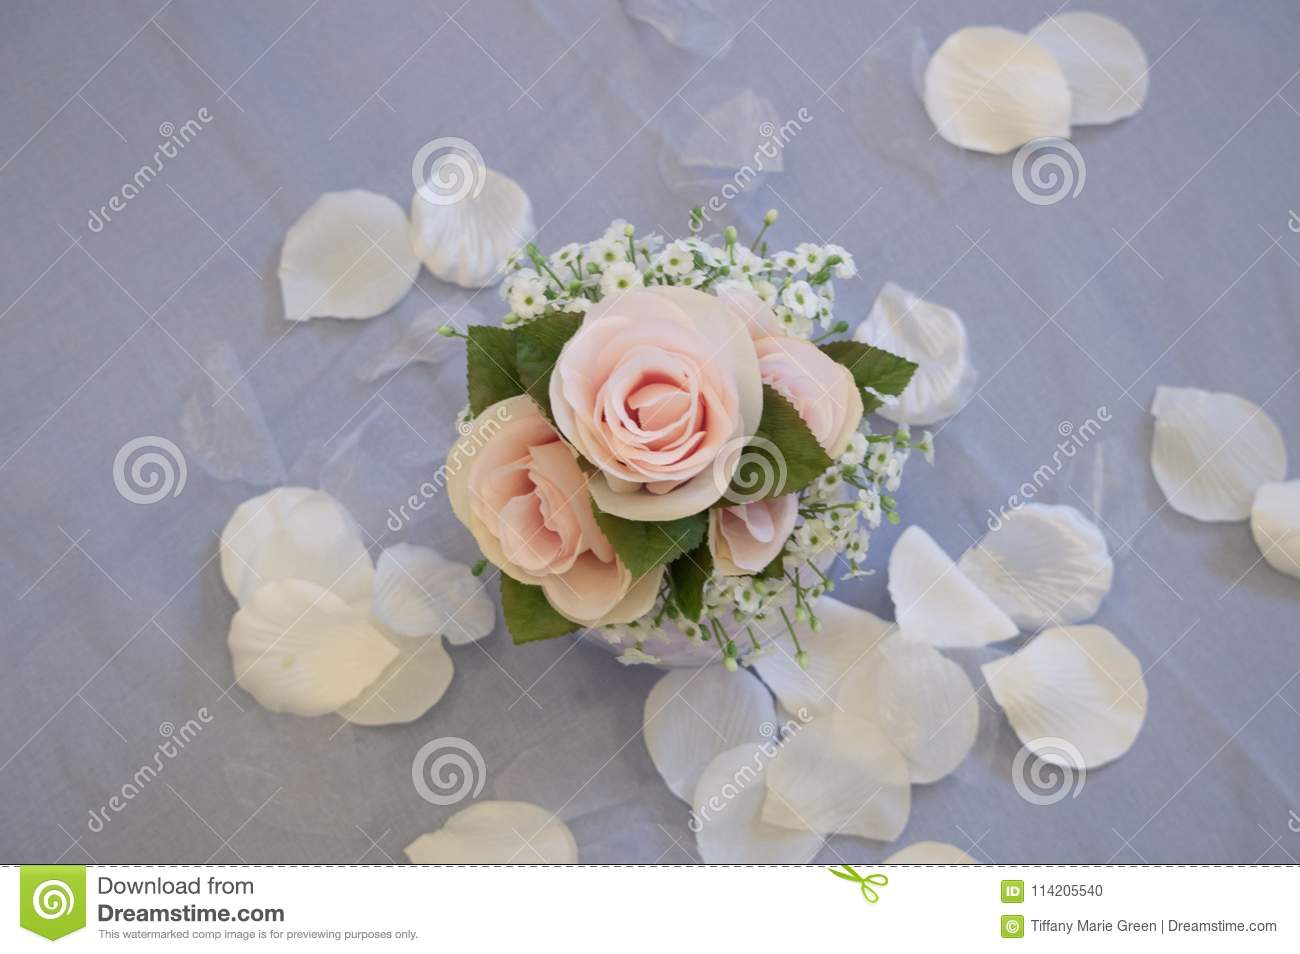 The Beautiful Three Rose Centerpiece At A Wedding Stock Photo